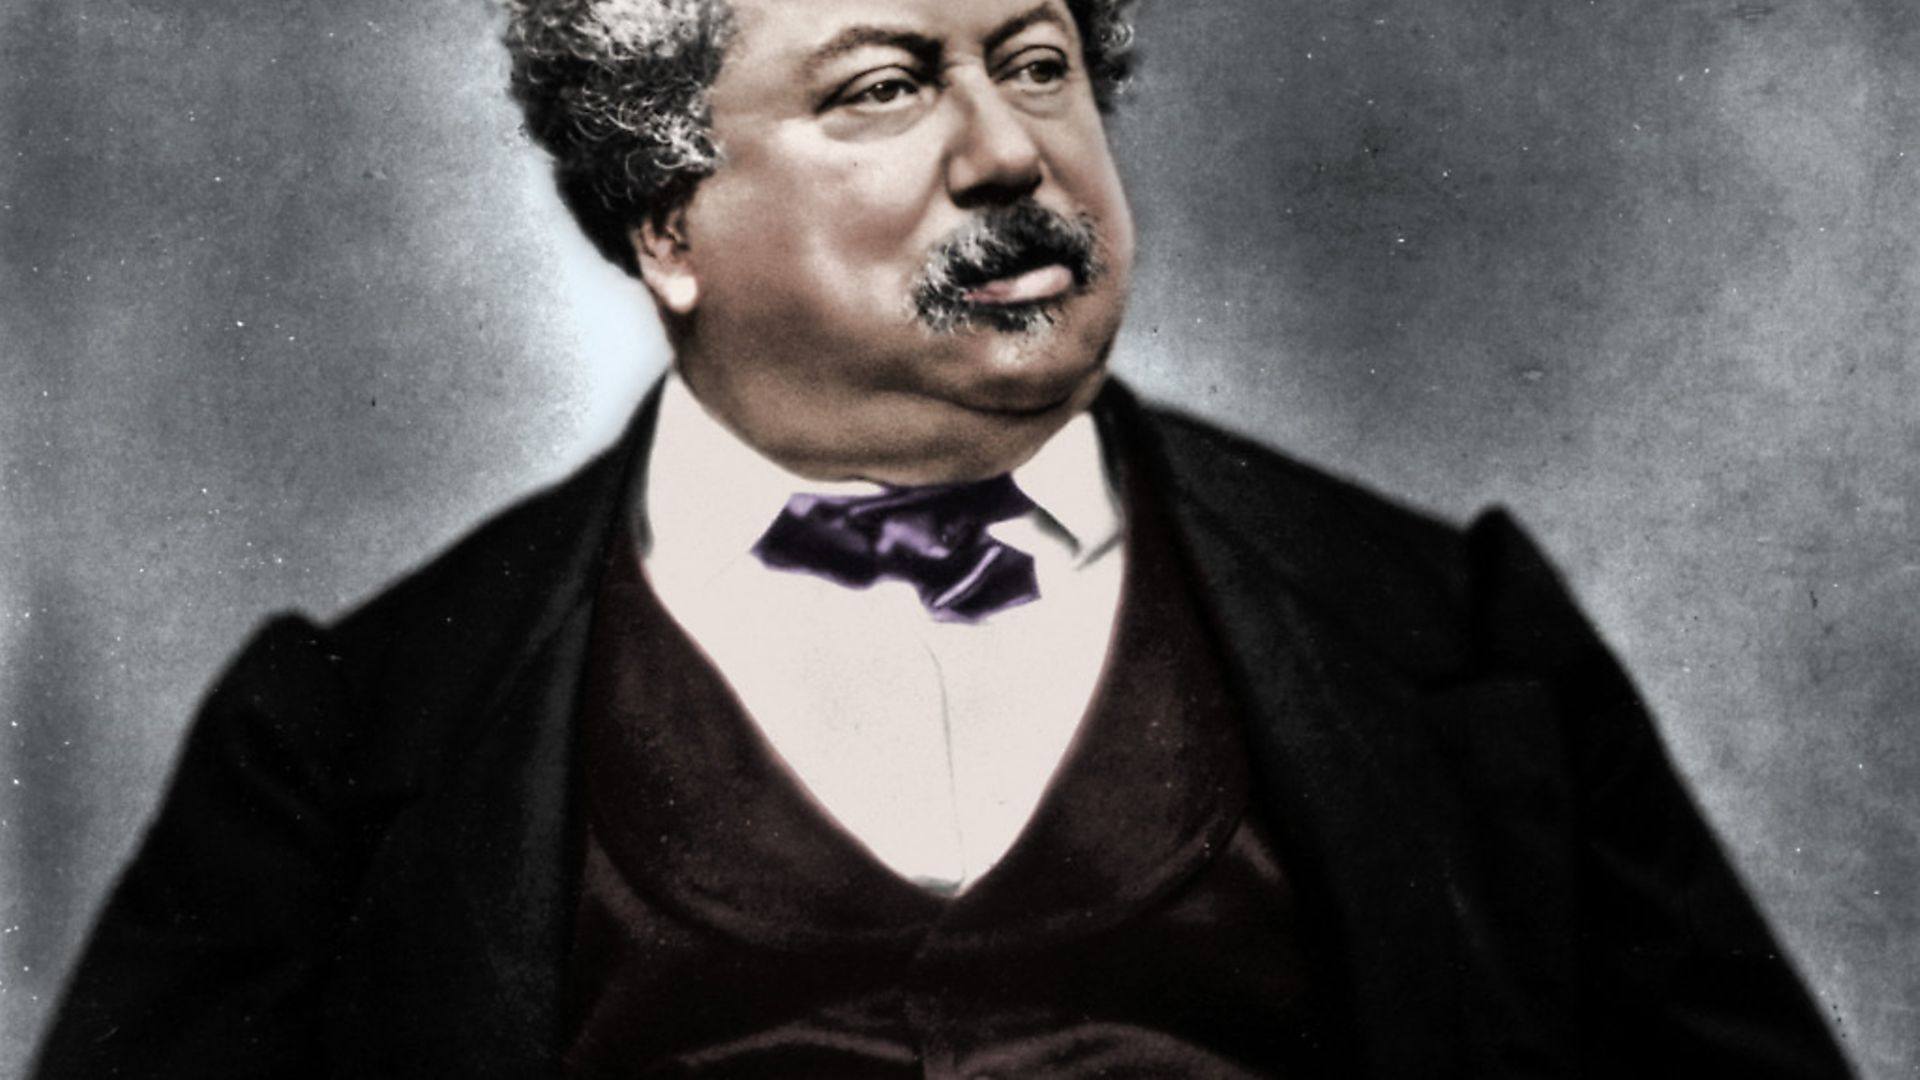 Alexandre Dumas the Elder, French novelist and playwright, c1850-1870. Dumas (1802-1870) was the author of popular historical adventure classics including The Man in the Iron Mask, The Three Musketeers and The Count of Monte Cristo. (Colorised black and white print). Artist Etienne Carjat.. (Photo by The Print Collector/Getty Images) - Credit: Getty Images